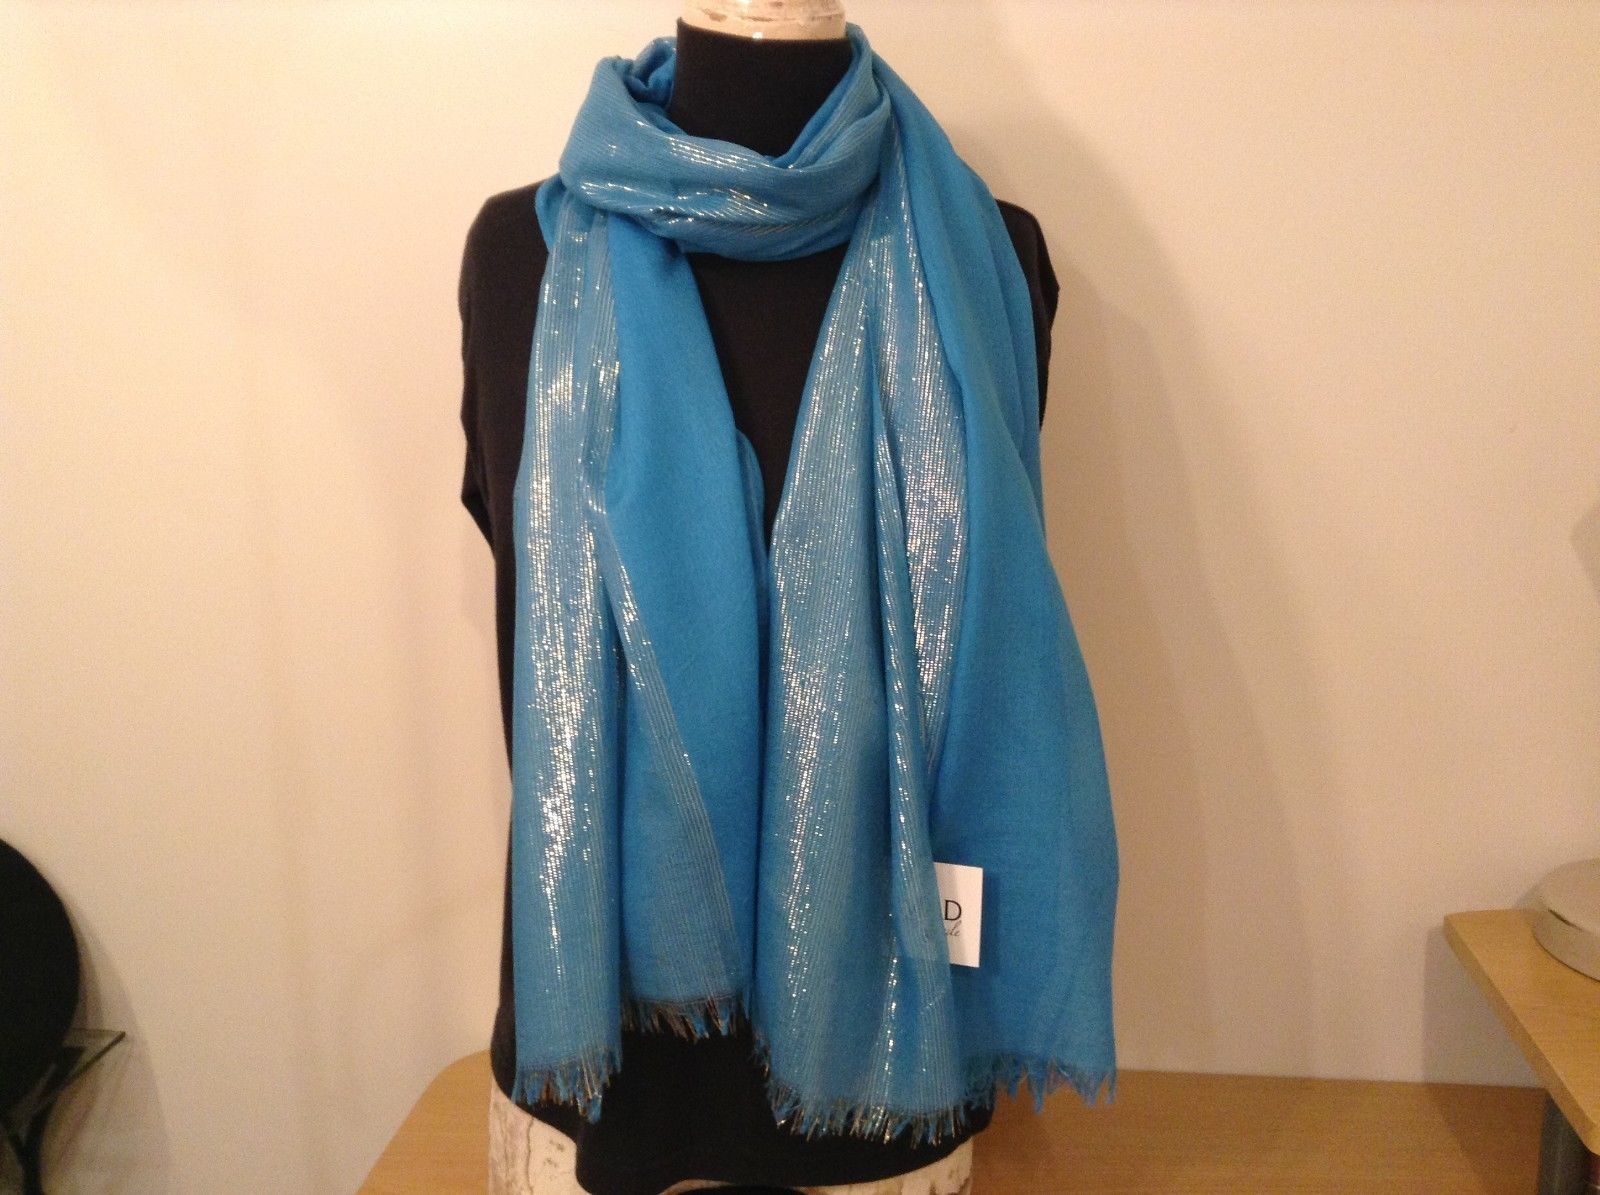 Blue Seren scarf with metallic thread accents  on half segment